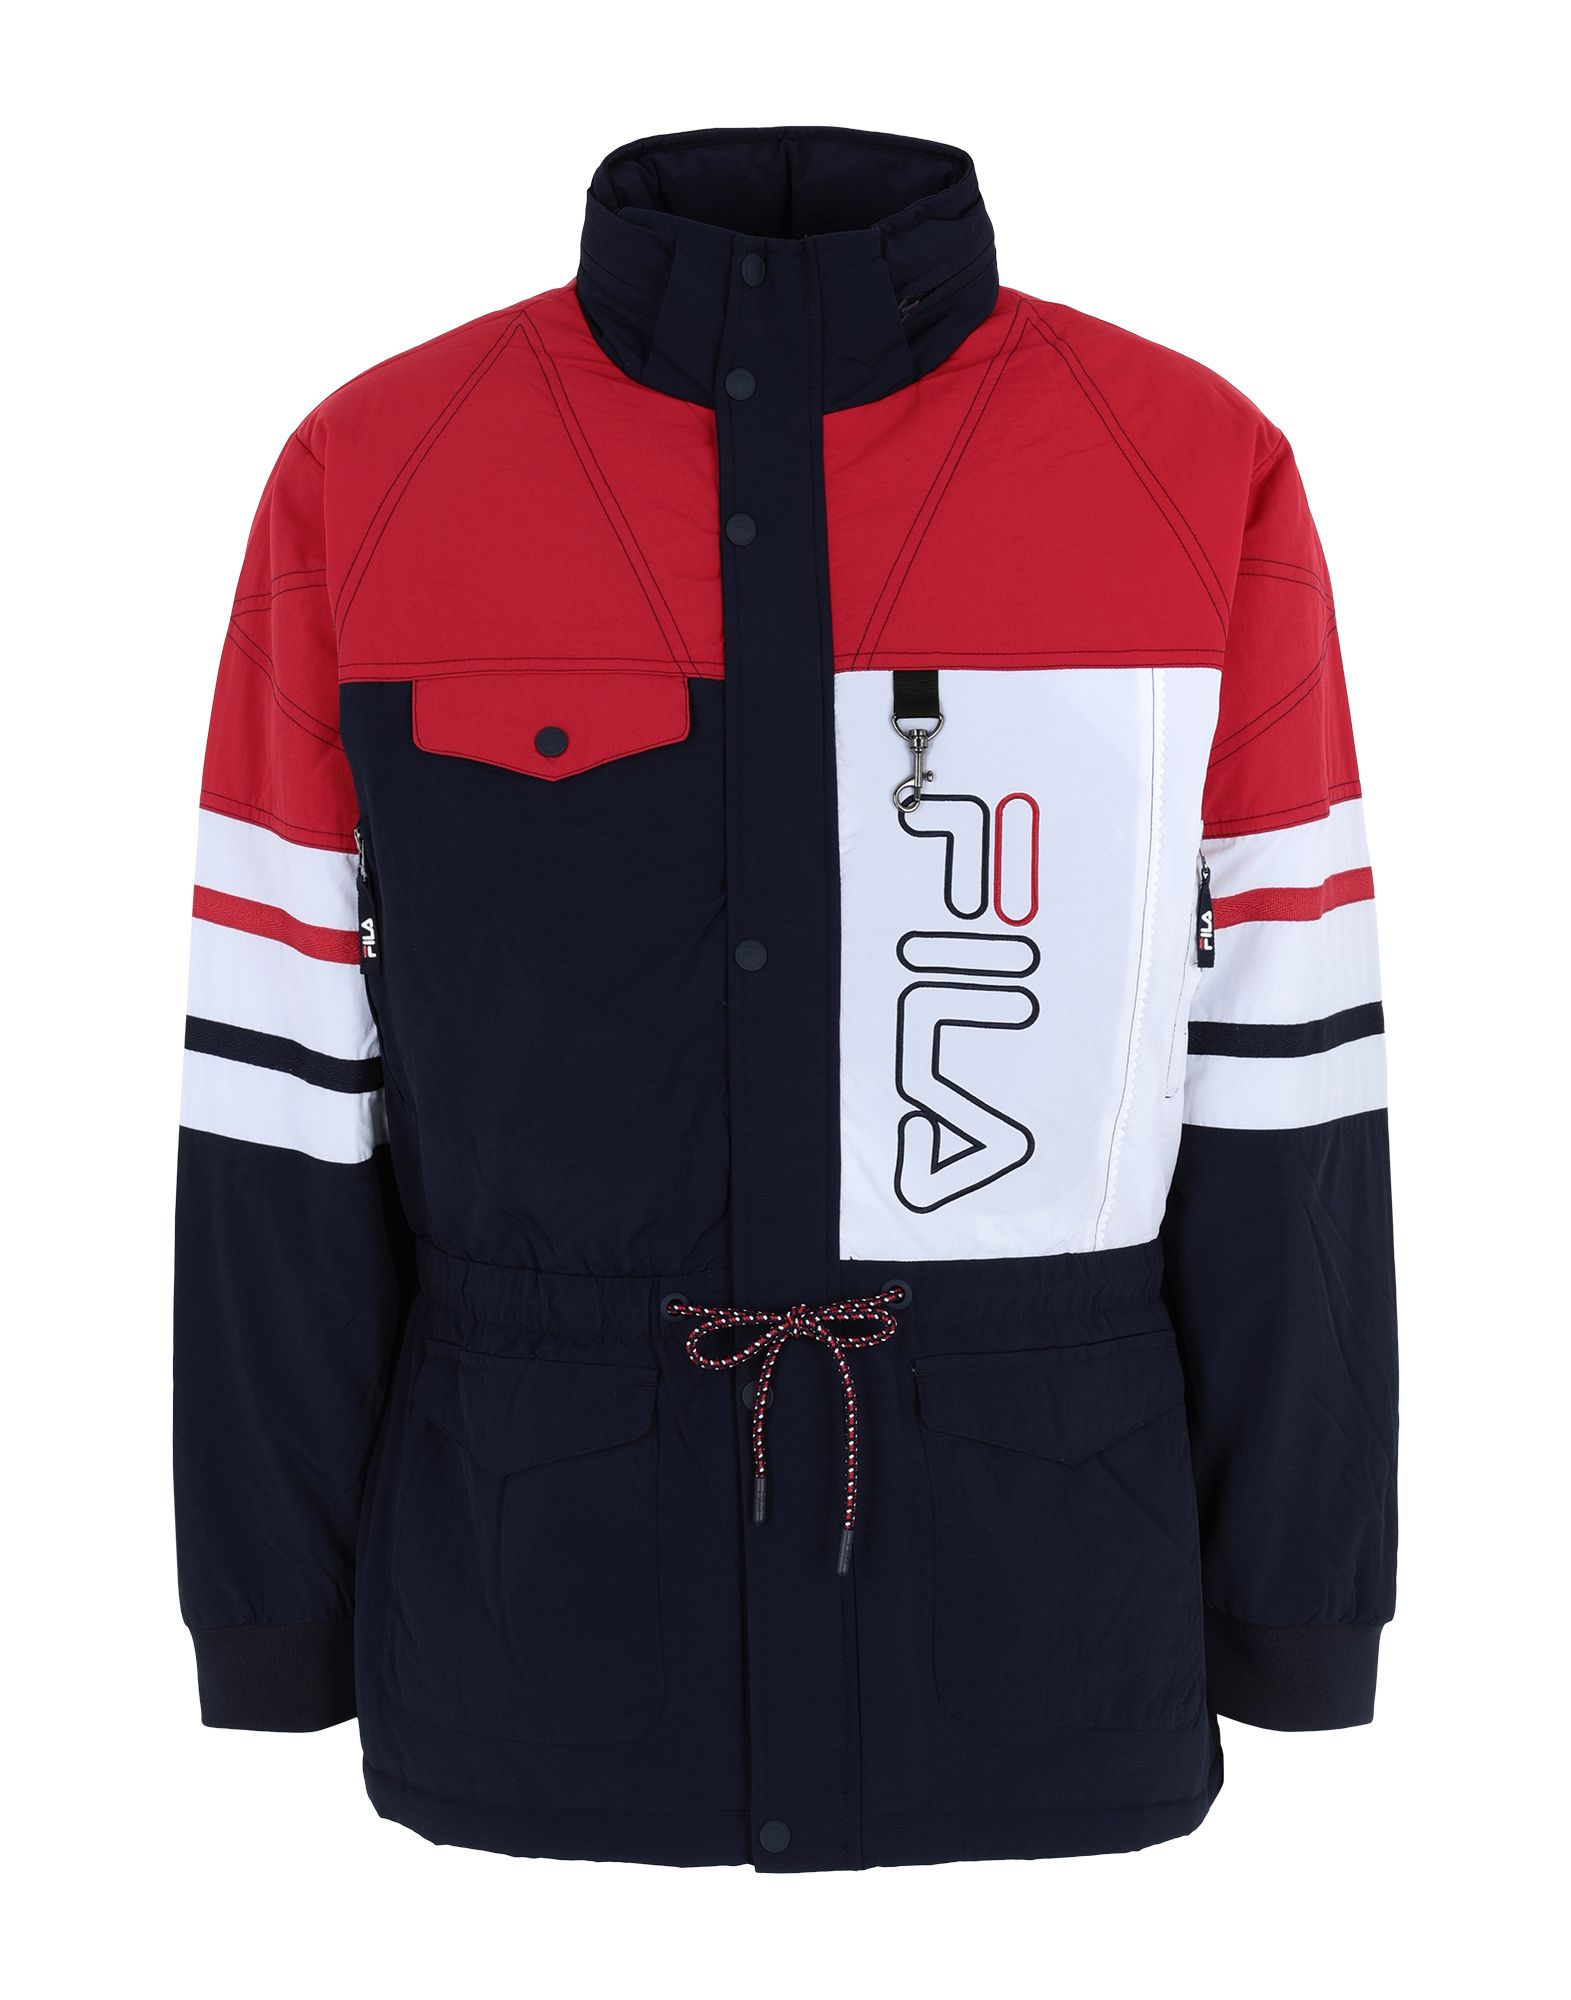 FILA HERITAGE Synthetic Down Jackets - Item 41934734